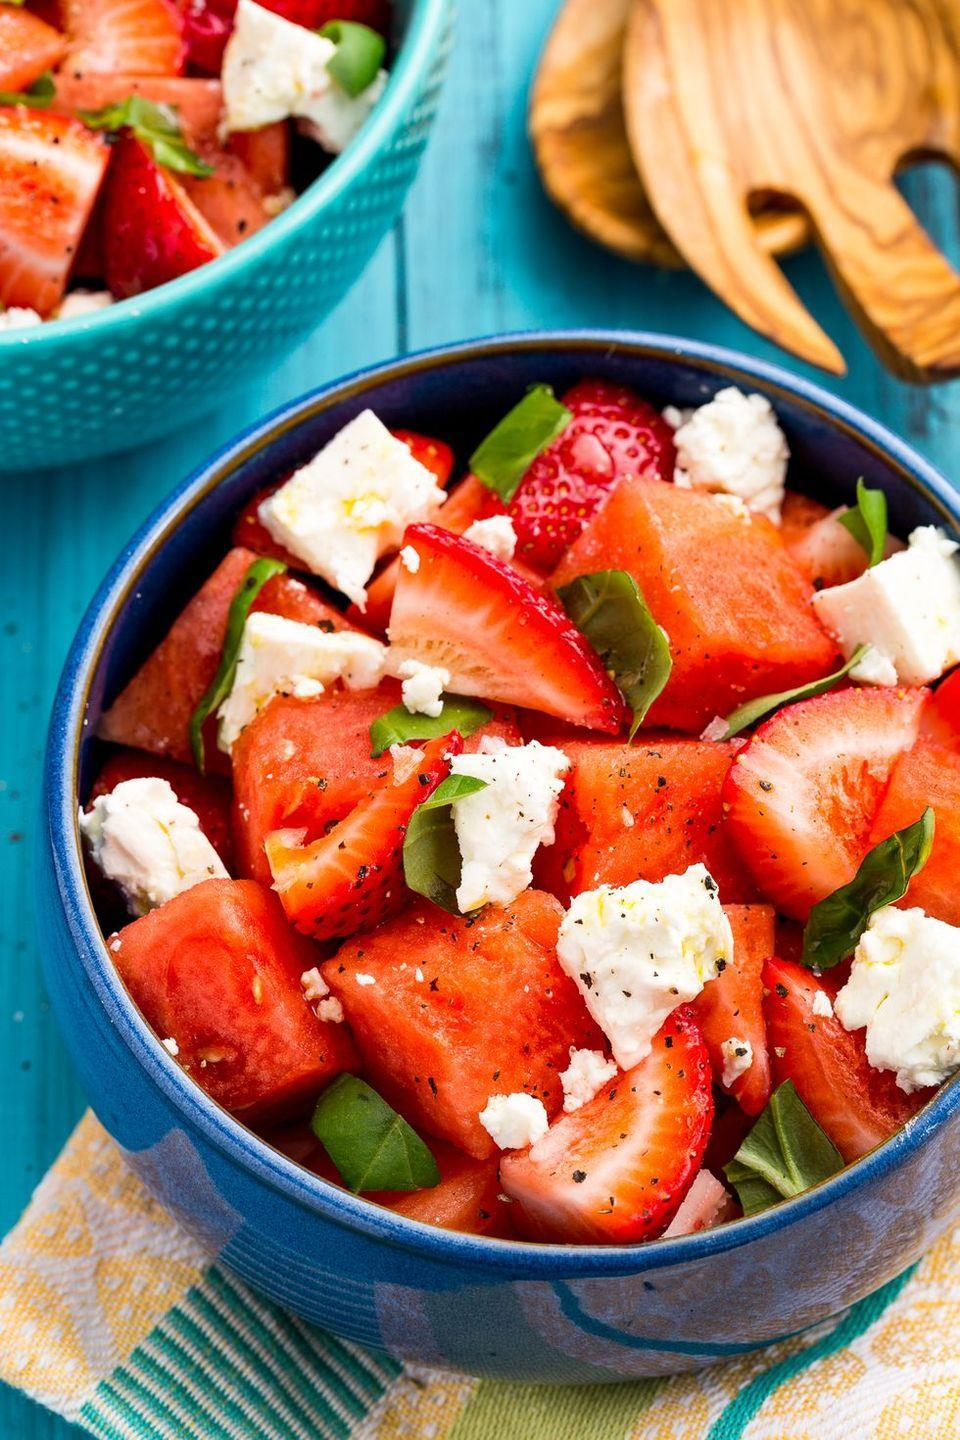 "<p>Step aside, all other fruit salads.</p><p>Get the <a href=""http://www.delish.com/uk/cooking/recipes/a33008255/watermelon-strawberry-caprese-salad-recipe/"" rel=""nofollow noopener"" target=""_blank"" data-ylk=""slk:Watermelon Strawberry Caprese Salad"" class=""link rapid-noclick-resp"">Watermelon Strawberry Caprese Salad</a> recipe.</p>"